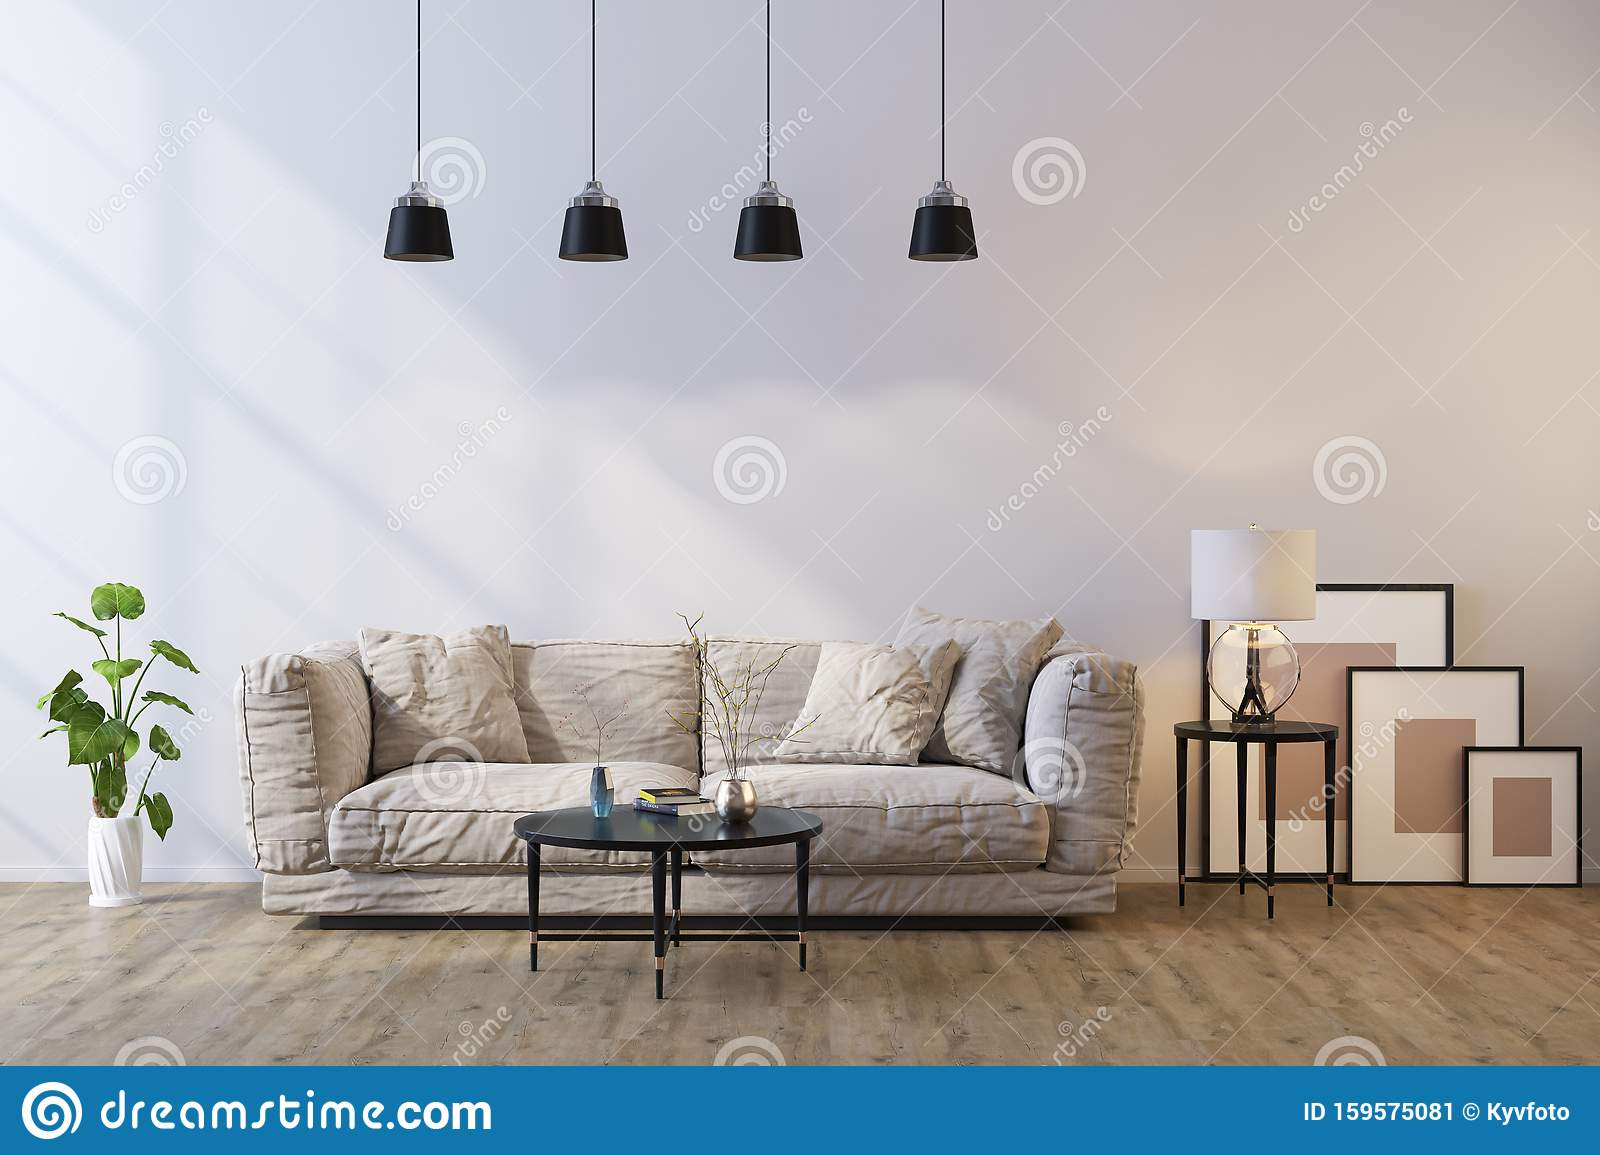 Decorative Background For Home Office And Hotel Modern Interior Design Stock Image Image Of Design Living 159575081